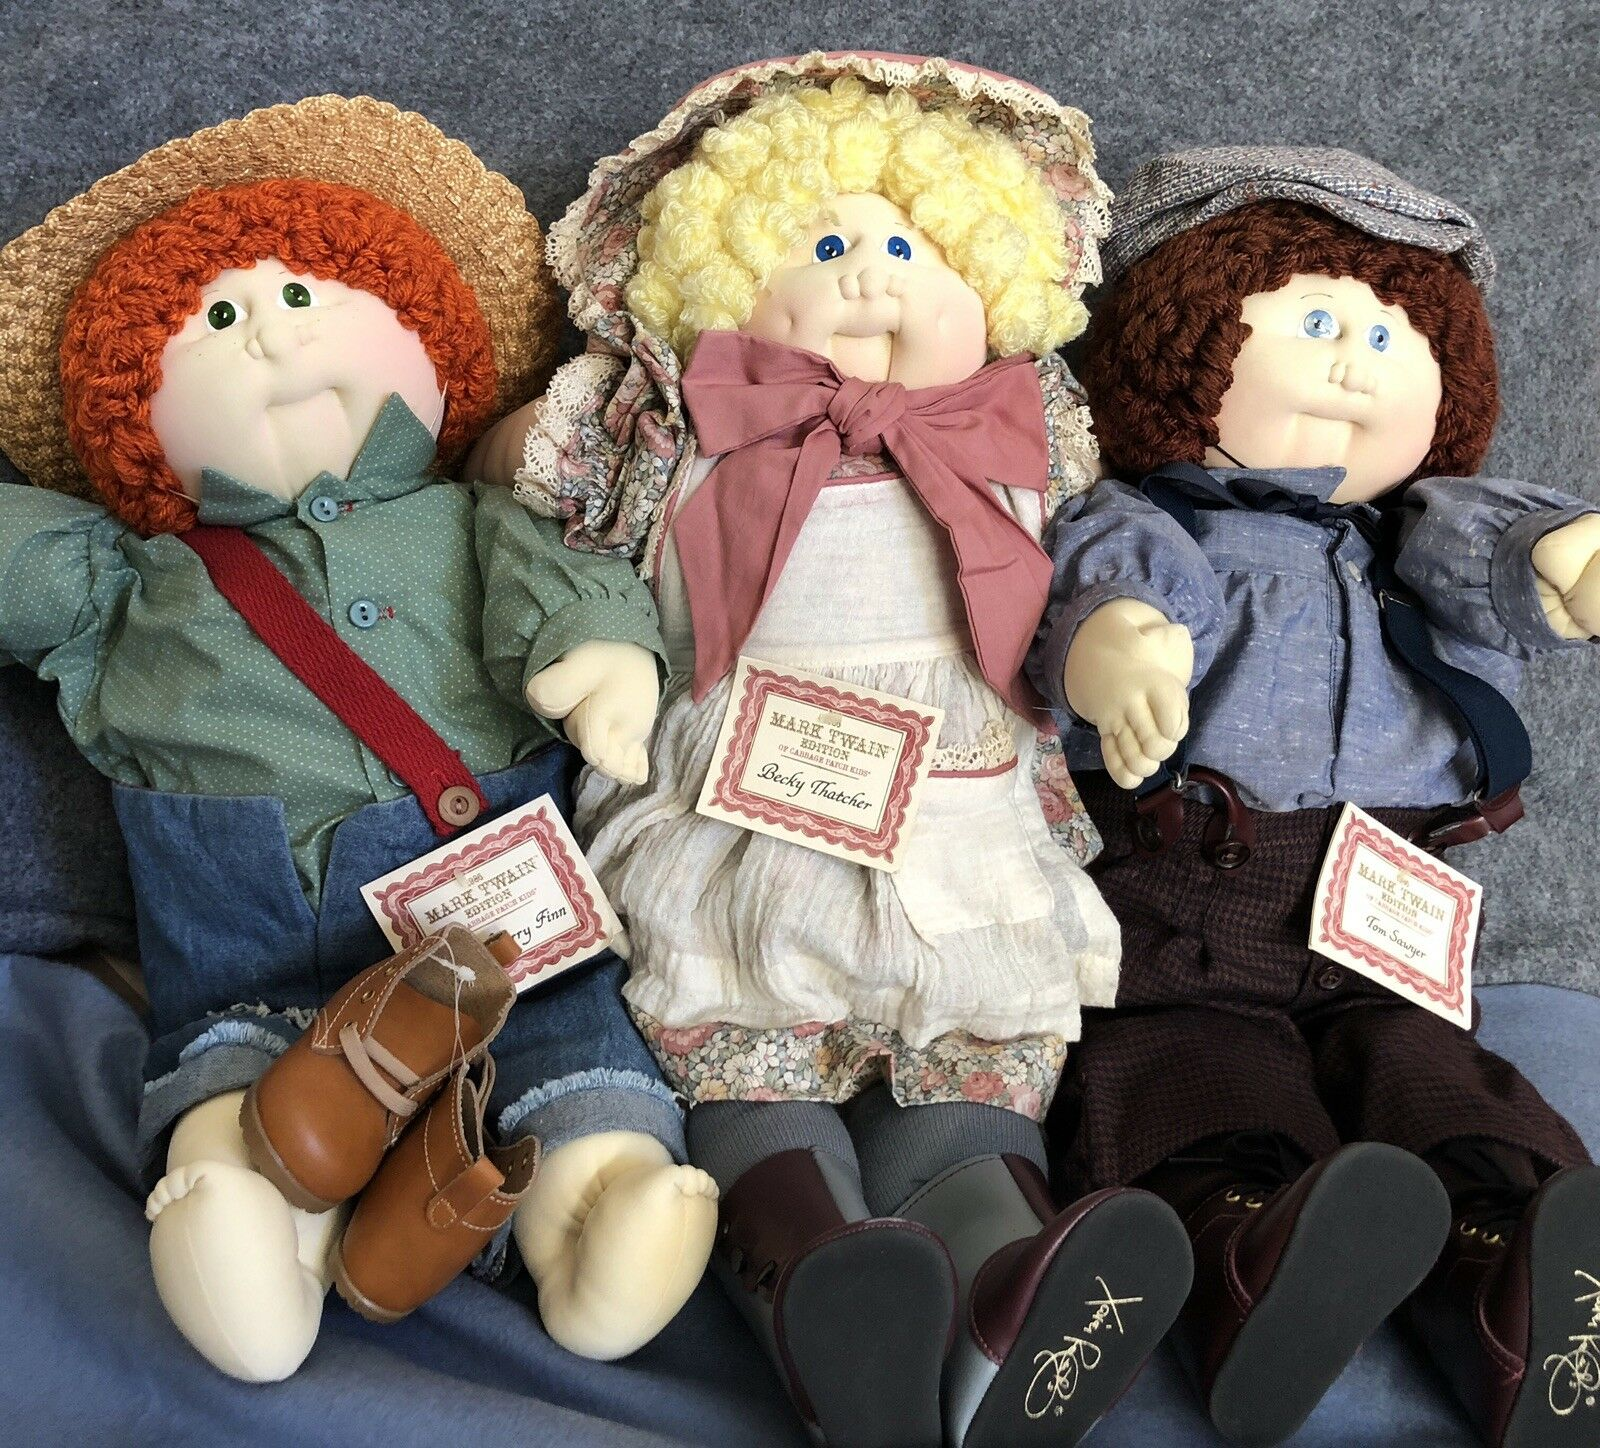 Ebay Cabbage Patch Kids Selling Price Apartment Therapy,Potato Bread